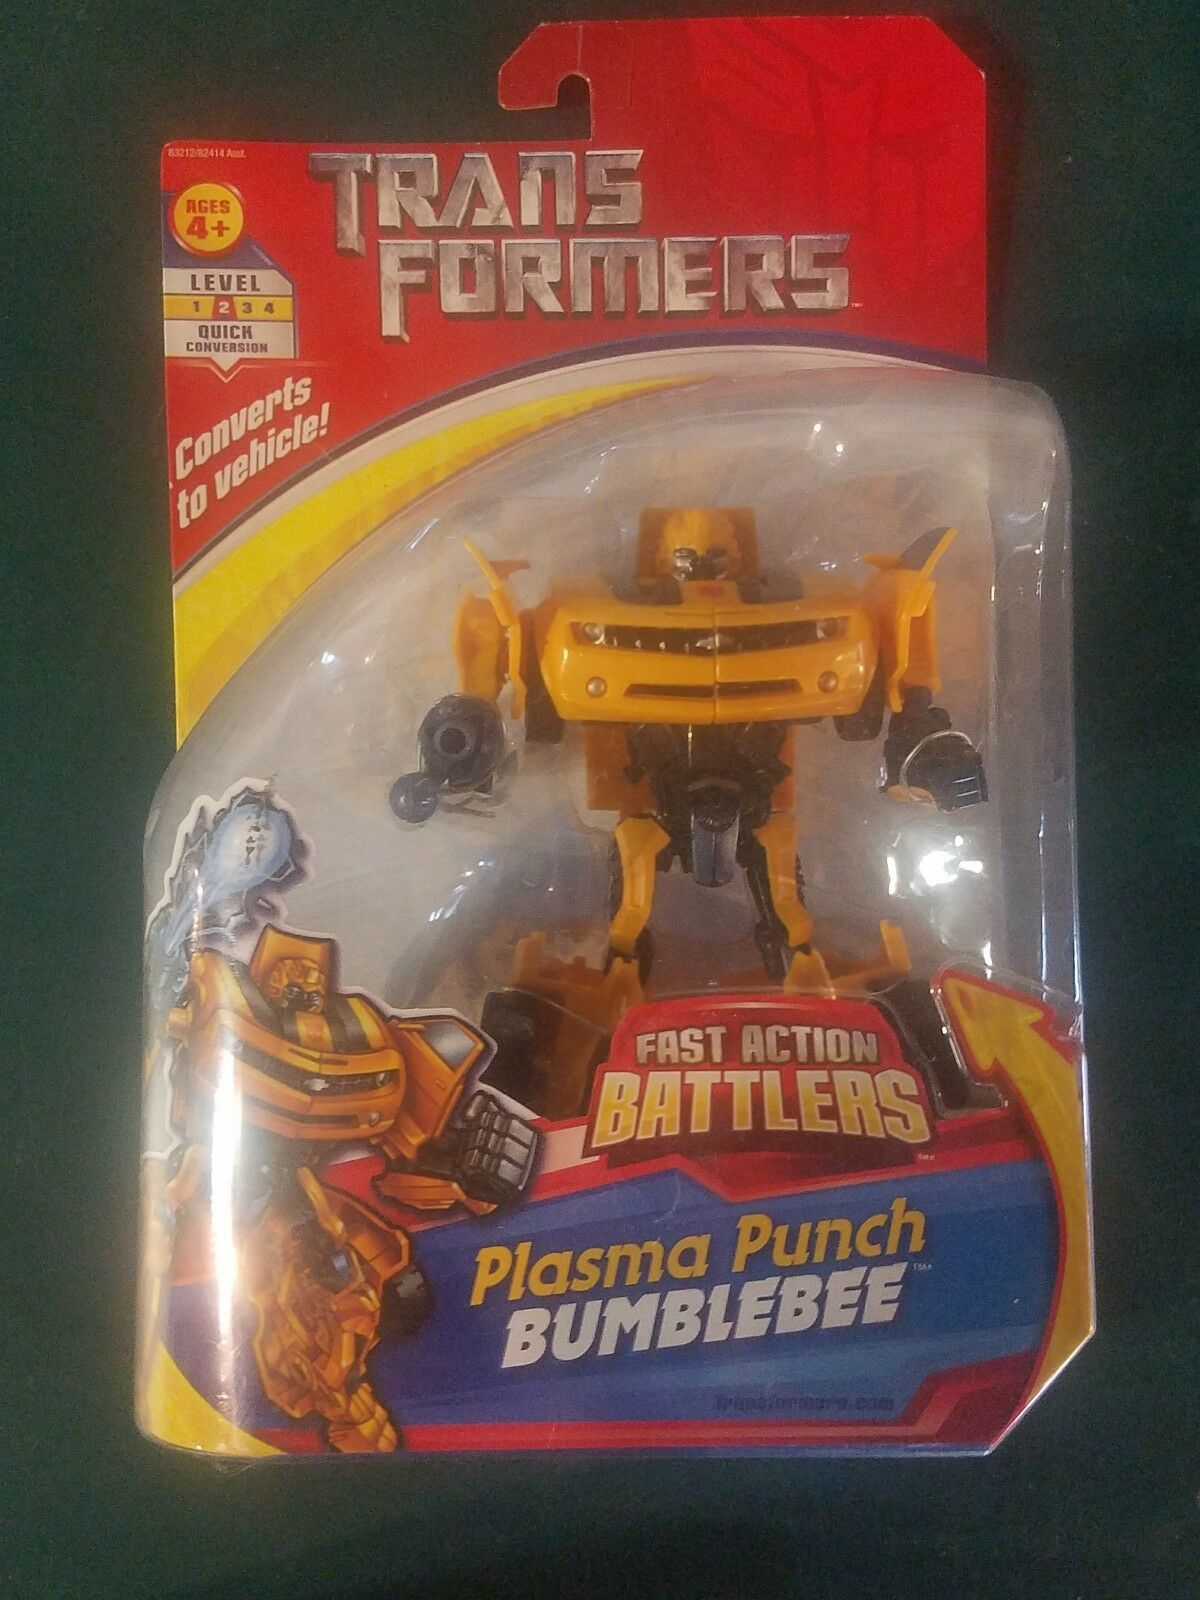 New in box Transformers Plasma Punch Bumblebee from 2007 Low Shopping